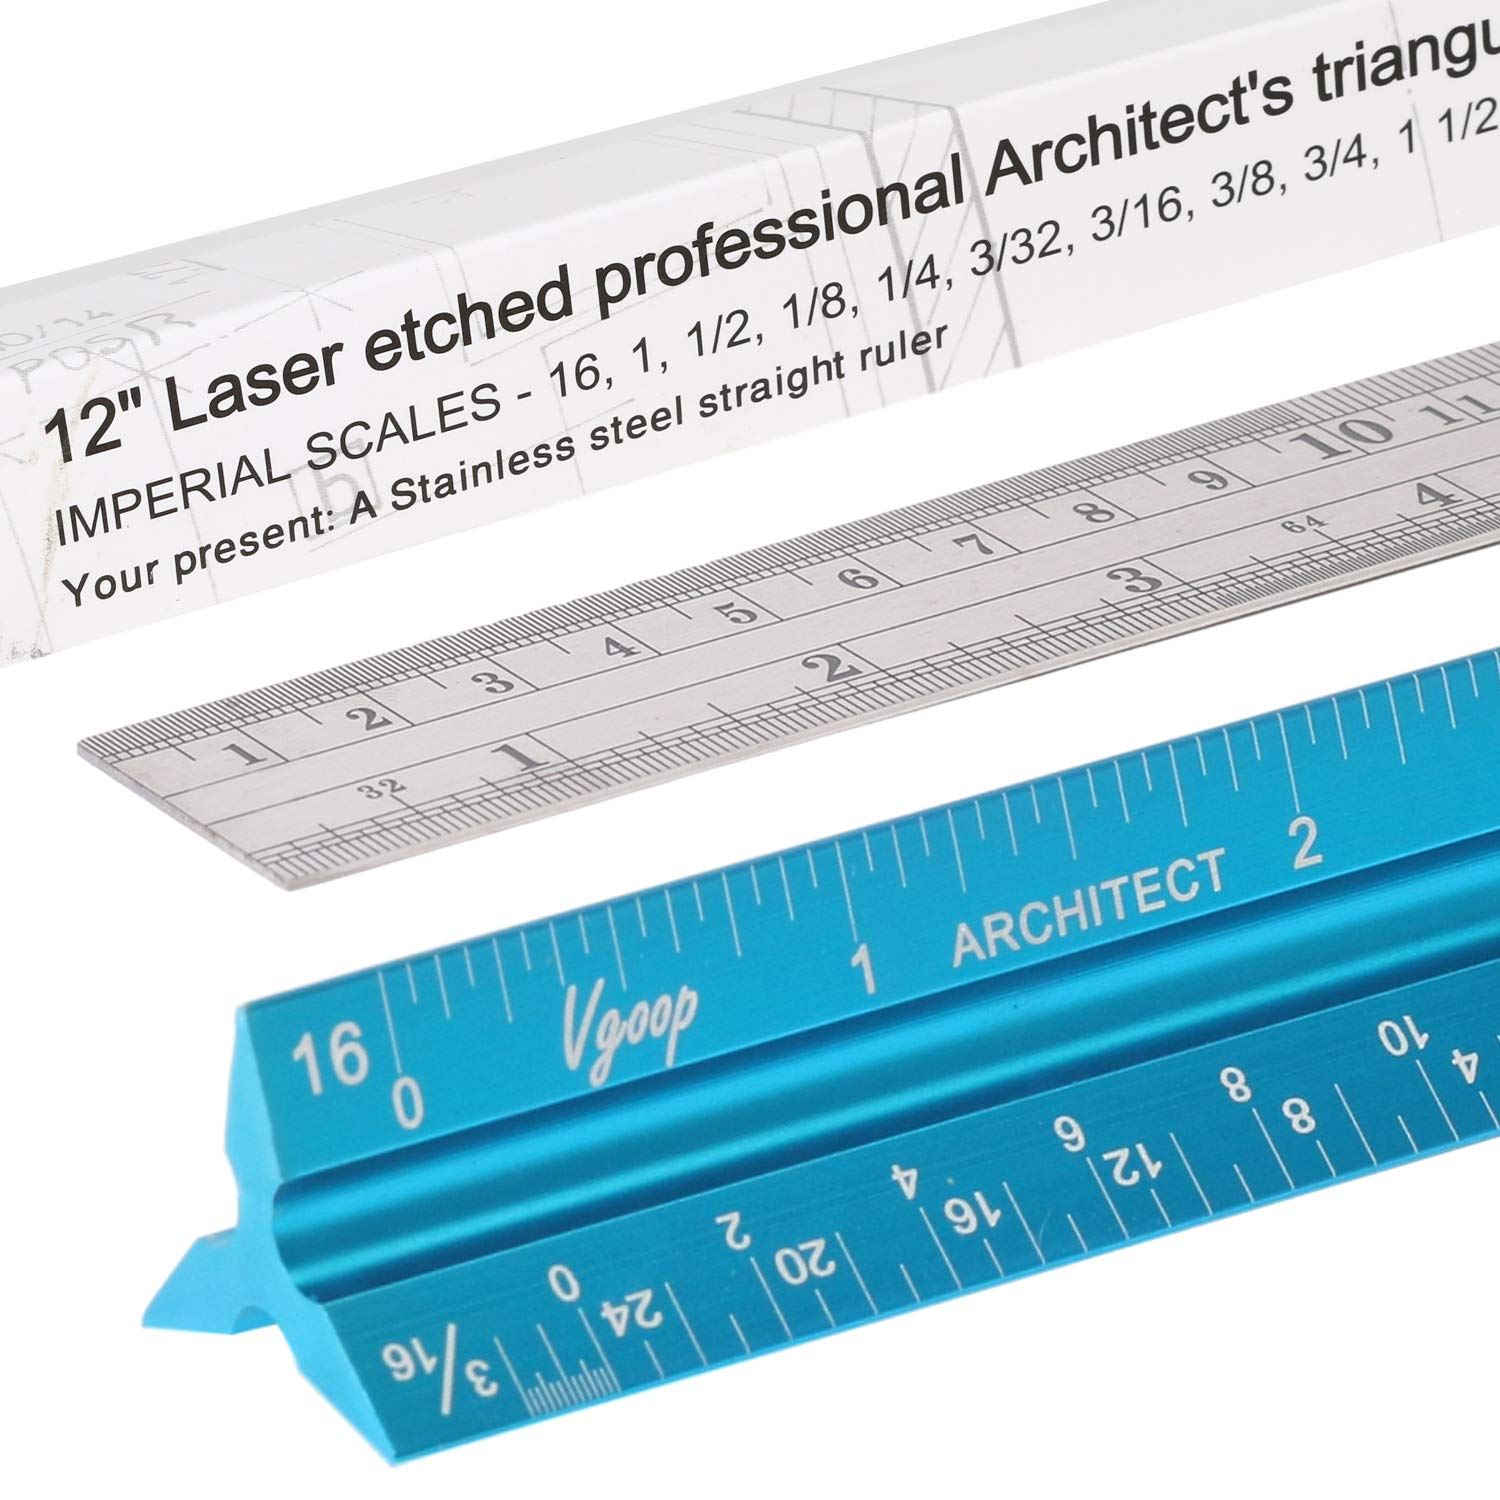 Architectural Scale Ruler, Engineer Drafting, Triangular - American Standard. 3 Sides, 11 Scales. Made of Laser Engraved Anodized Turquoise Aluminum. 12'' Long. 100% Accuracy. Bonus Steel Ruler by VGOOP